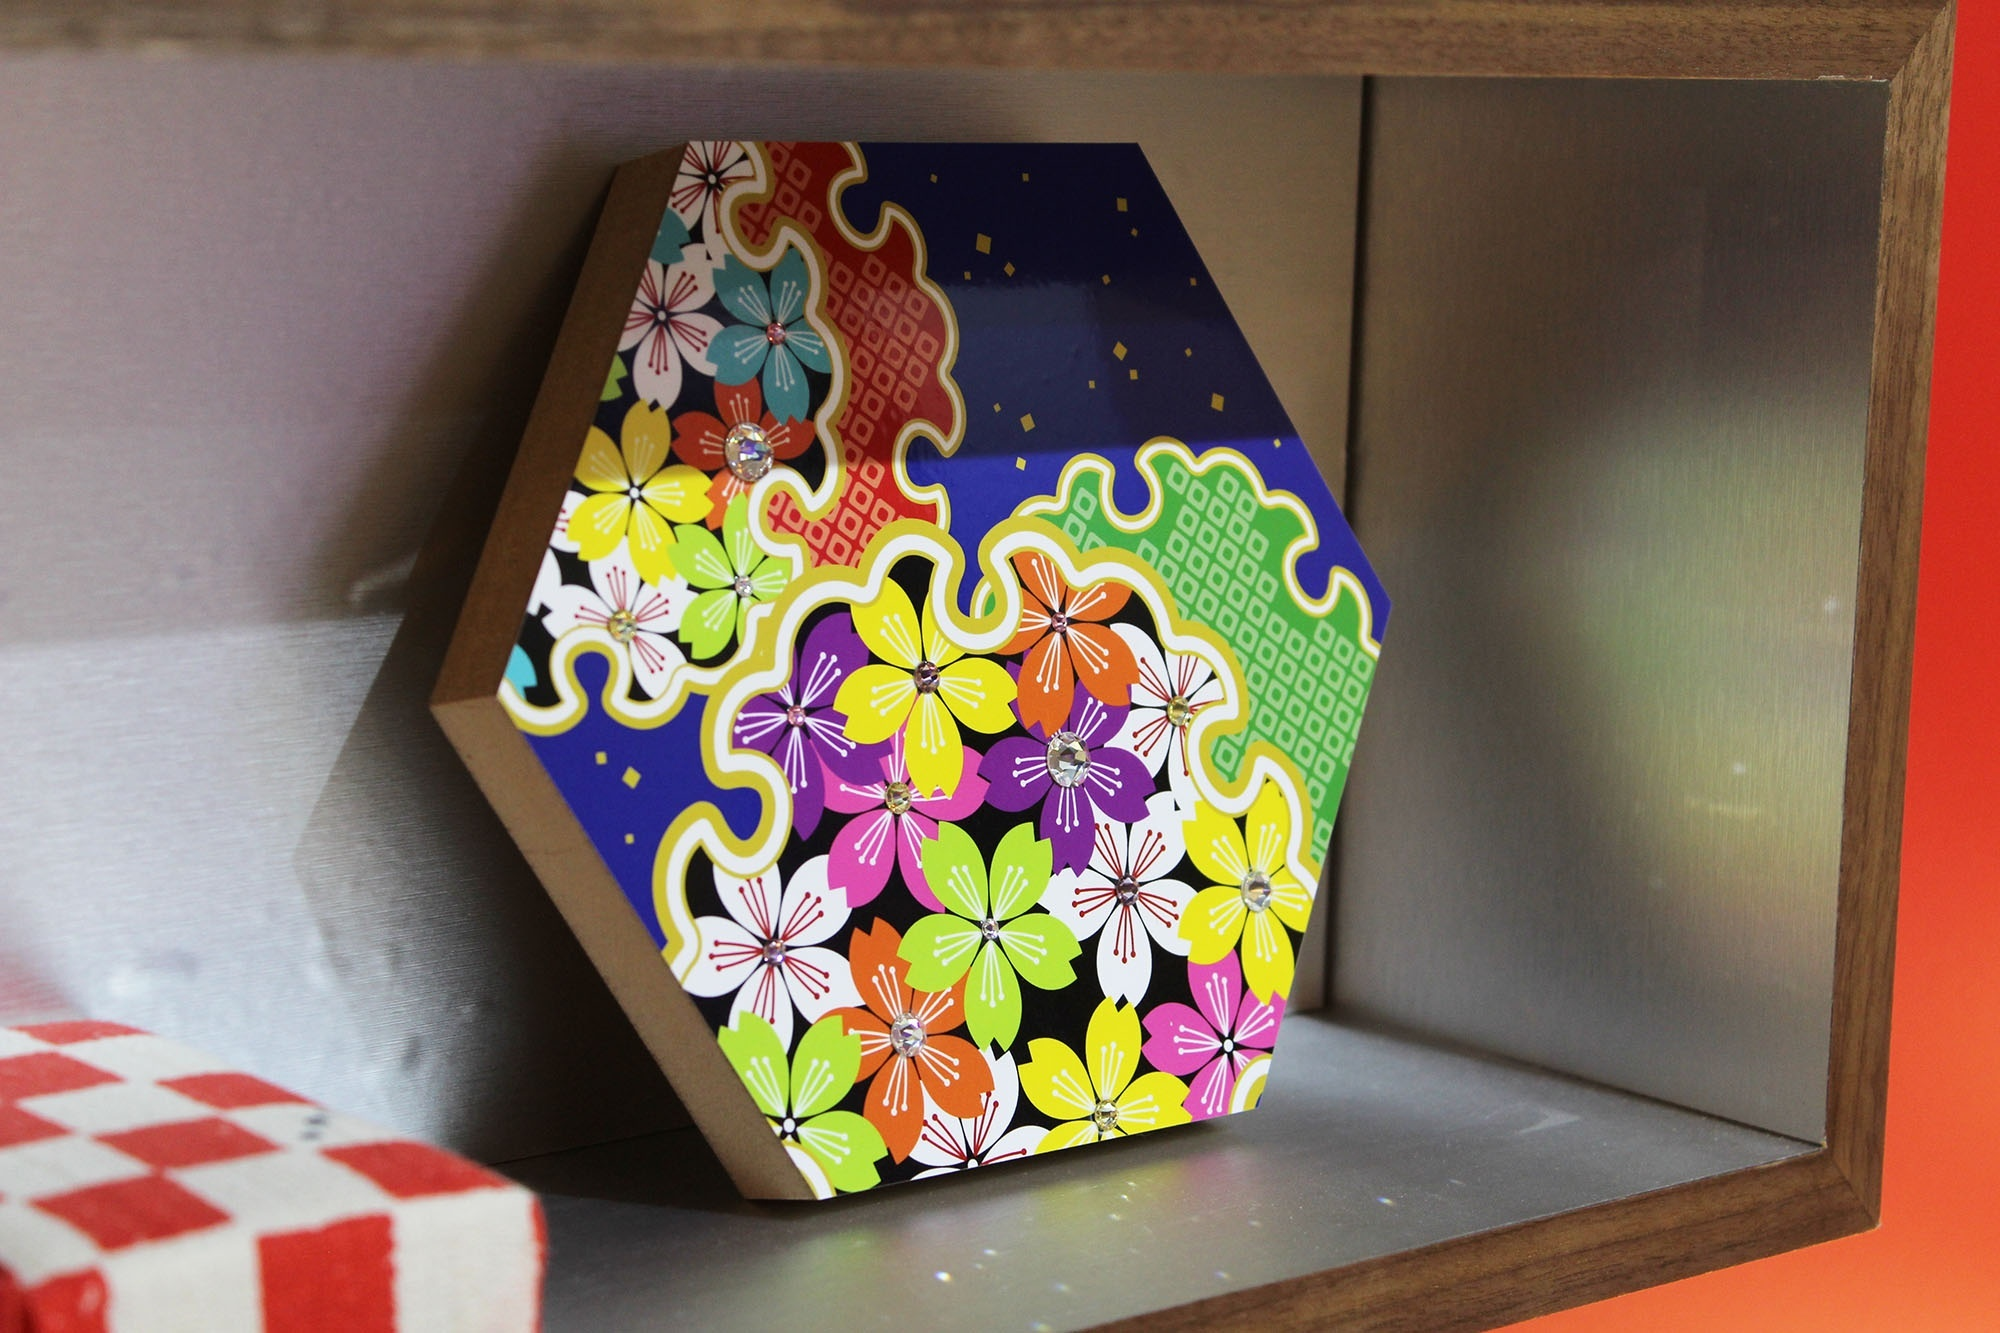 Hexangular decorative board